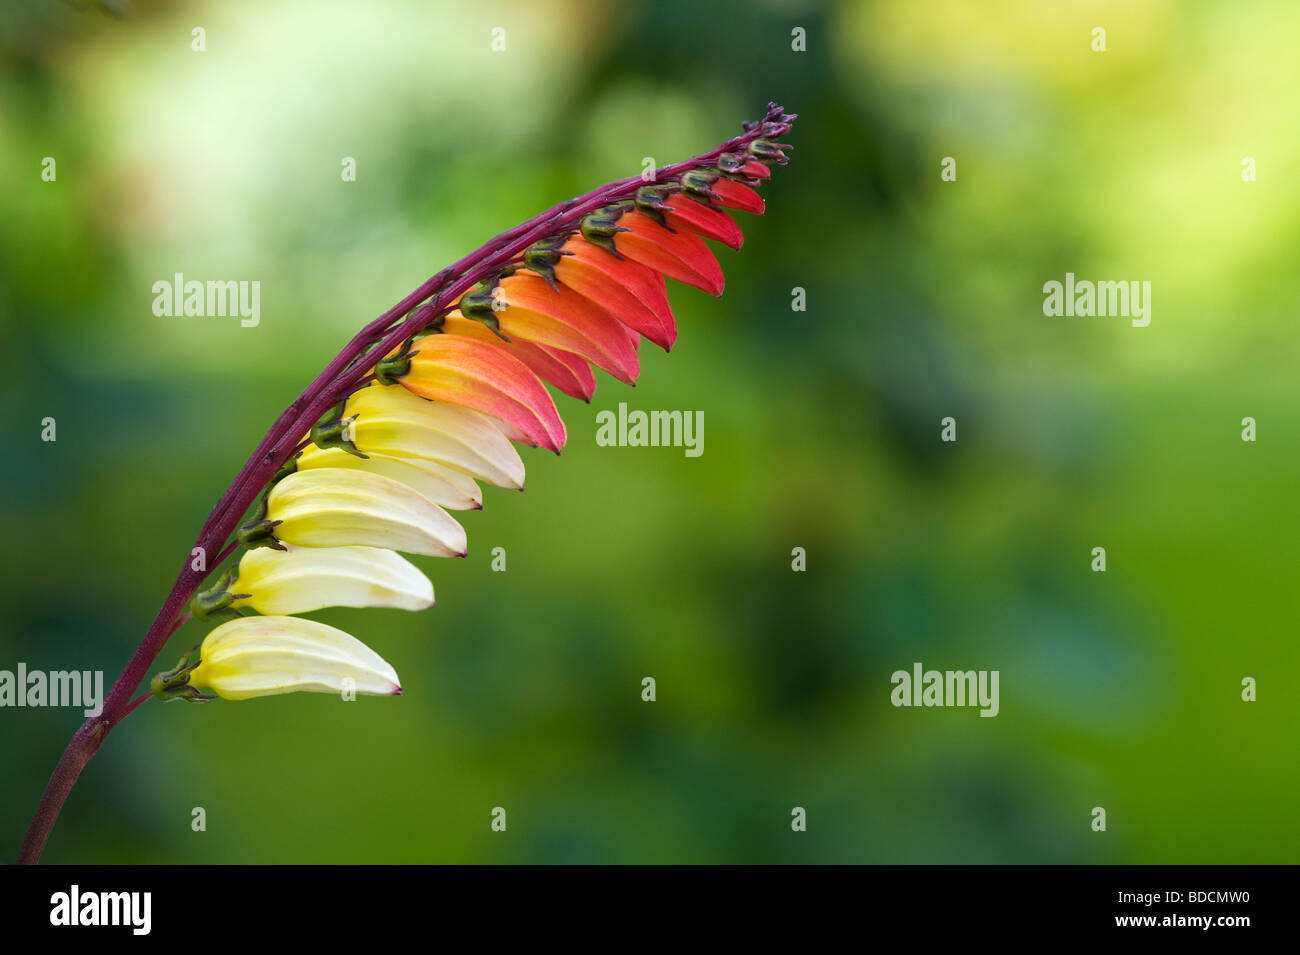 Ipomoea lobata. Firecracker vine in flower. UK - Stock Image